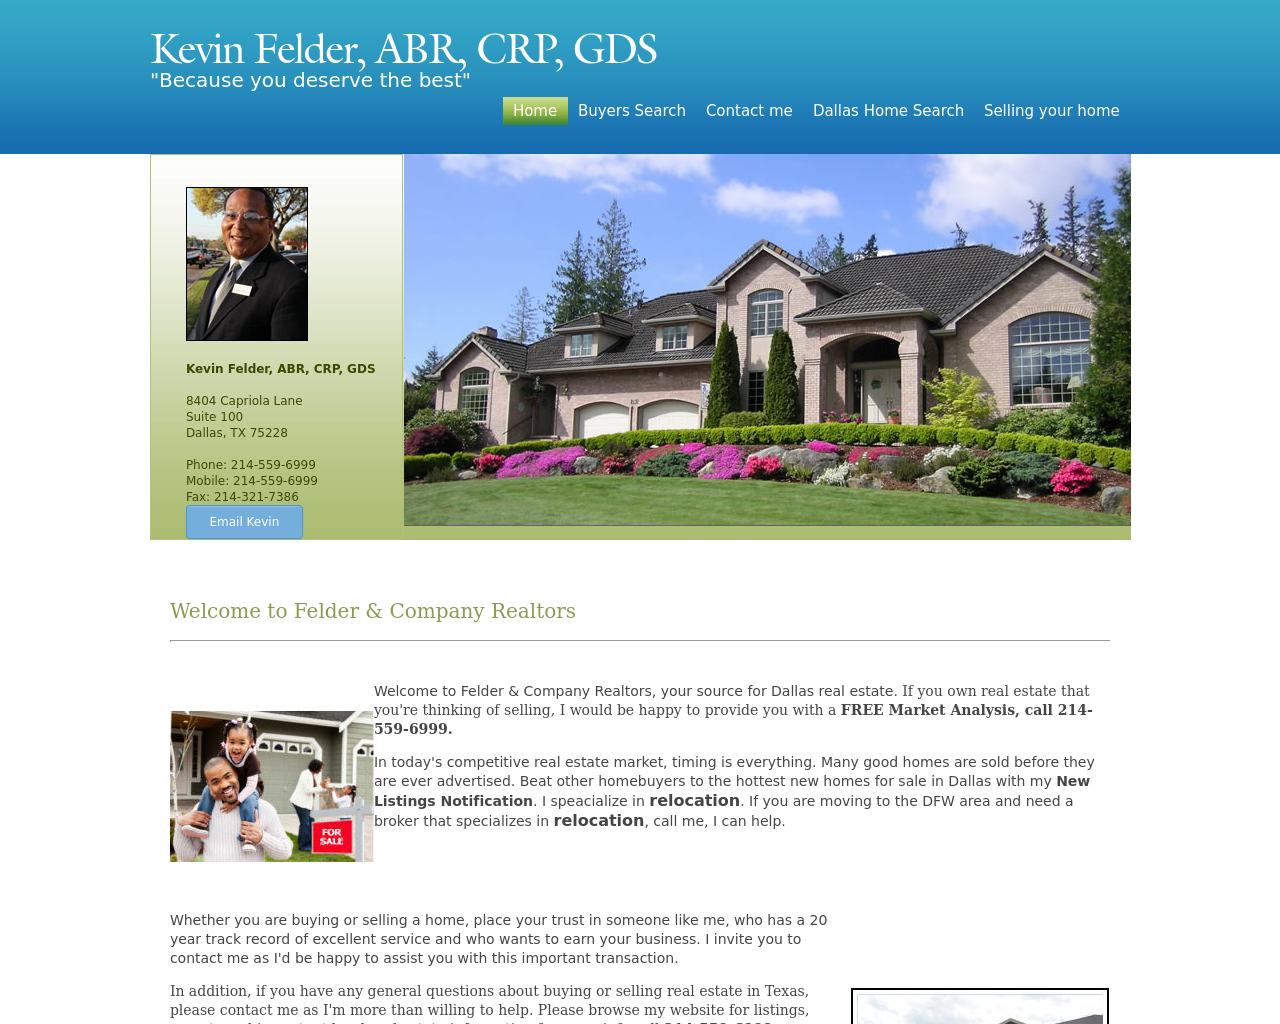 Kevin-Felder,-ABR,-CRP-Advertising-Reviews-Pricing